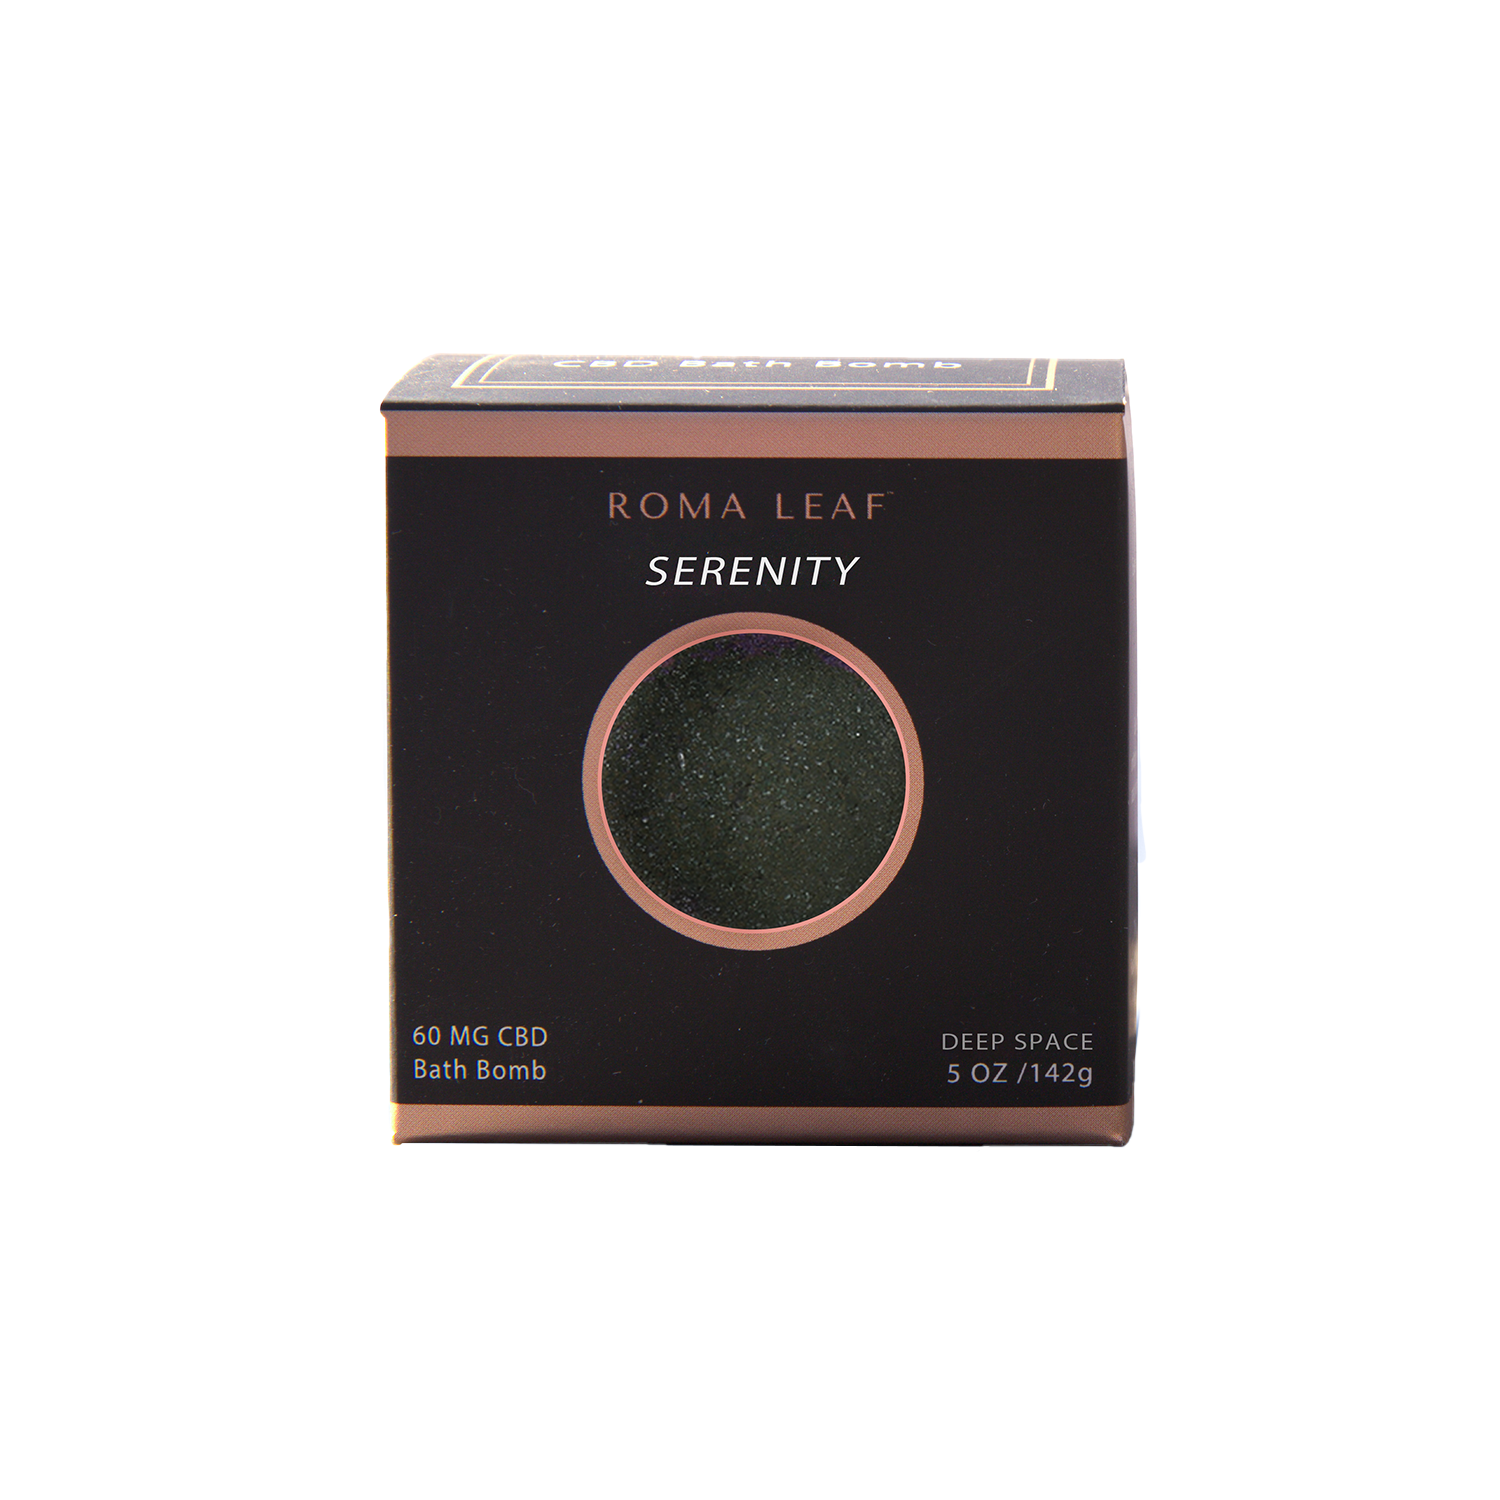 Roma Leaf Bath Bomb | Serenity 60mg - Broad Spectrum CBD